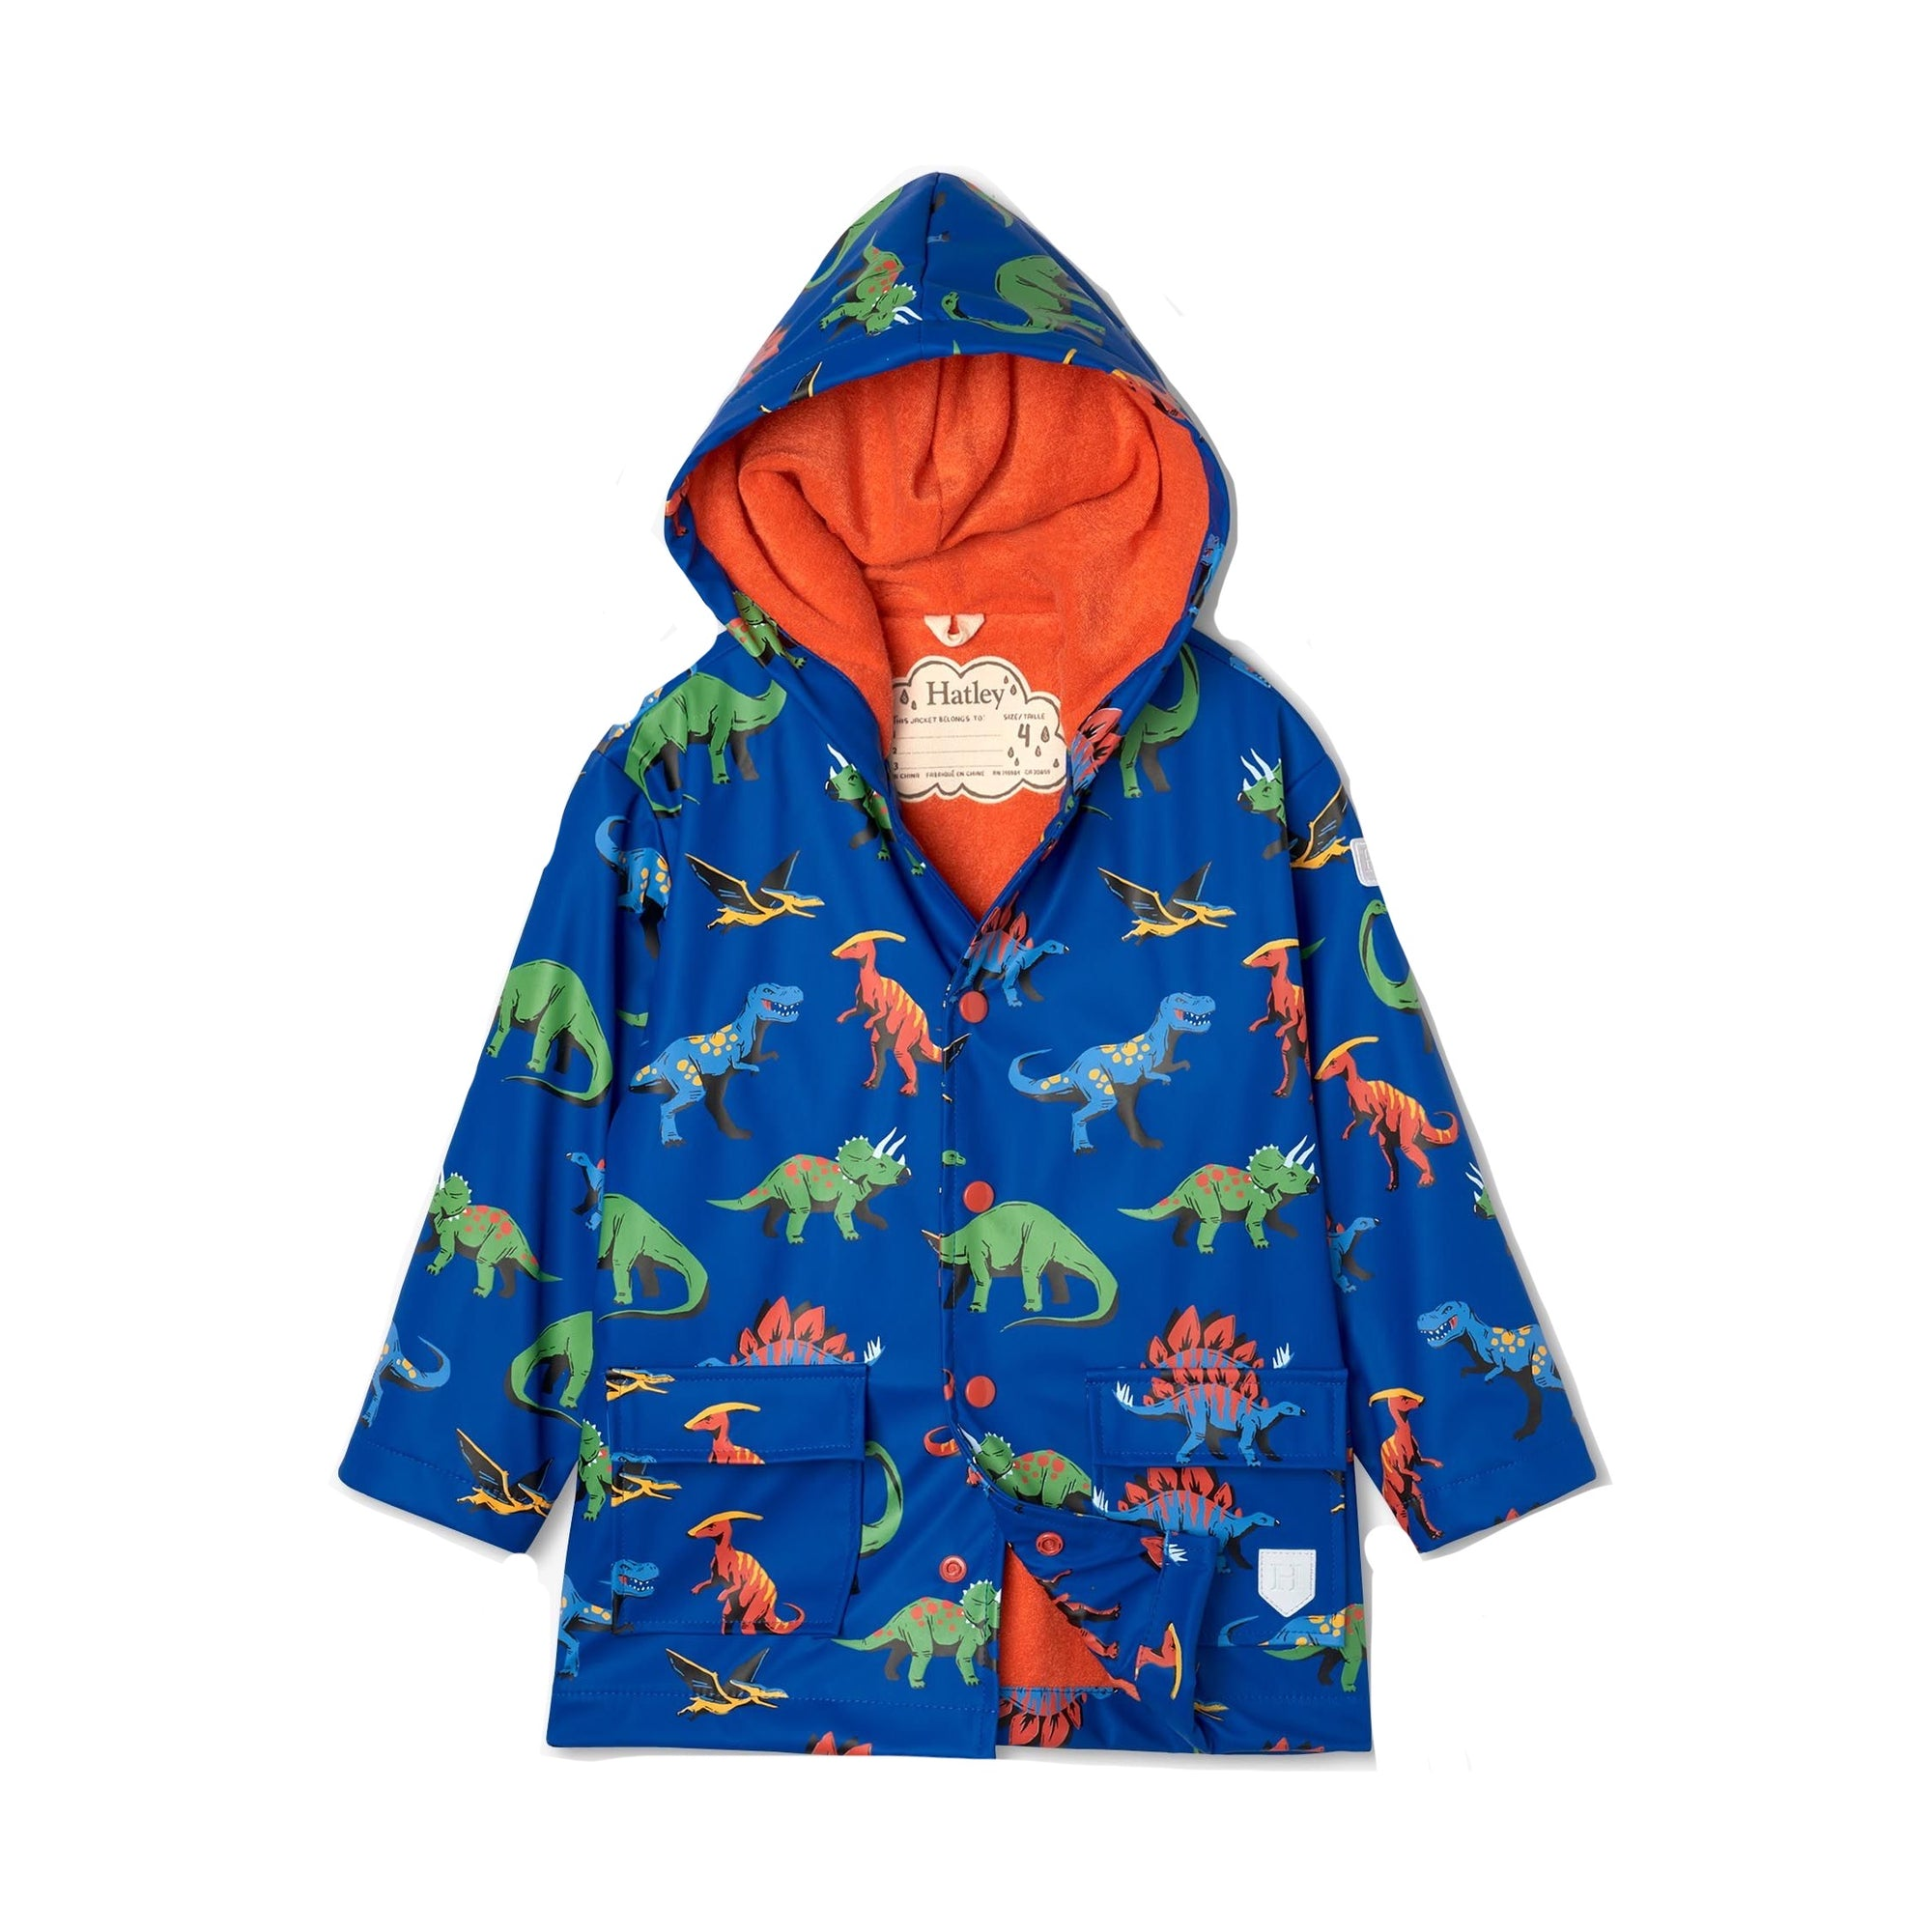 Hatley Boys Dino Raincoat S21dik1336